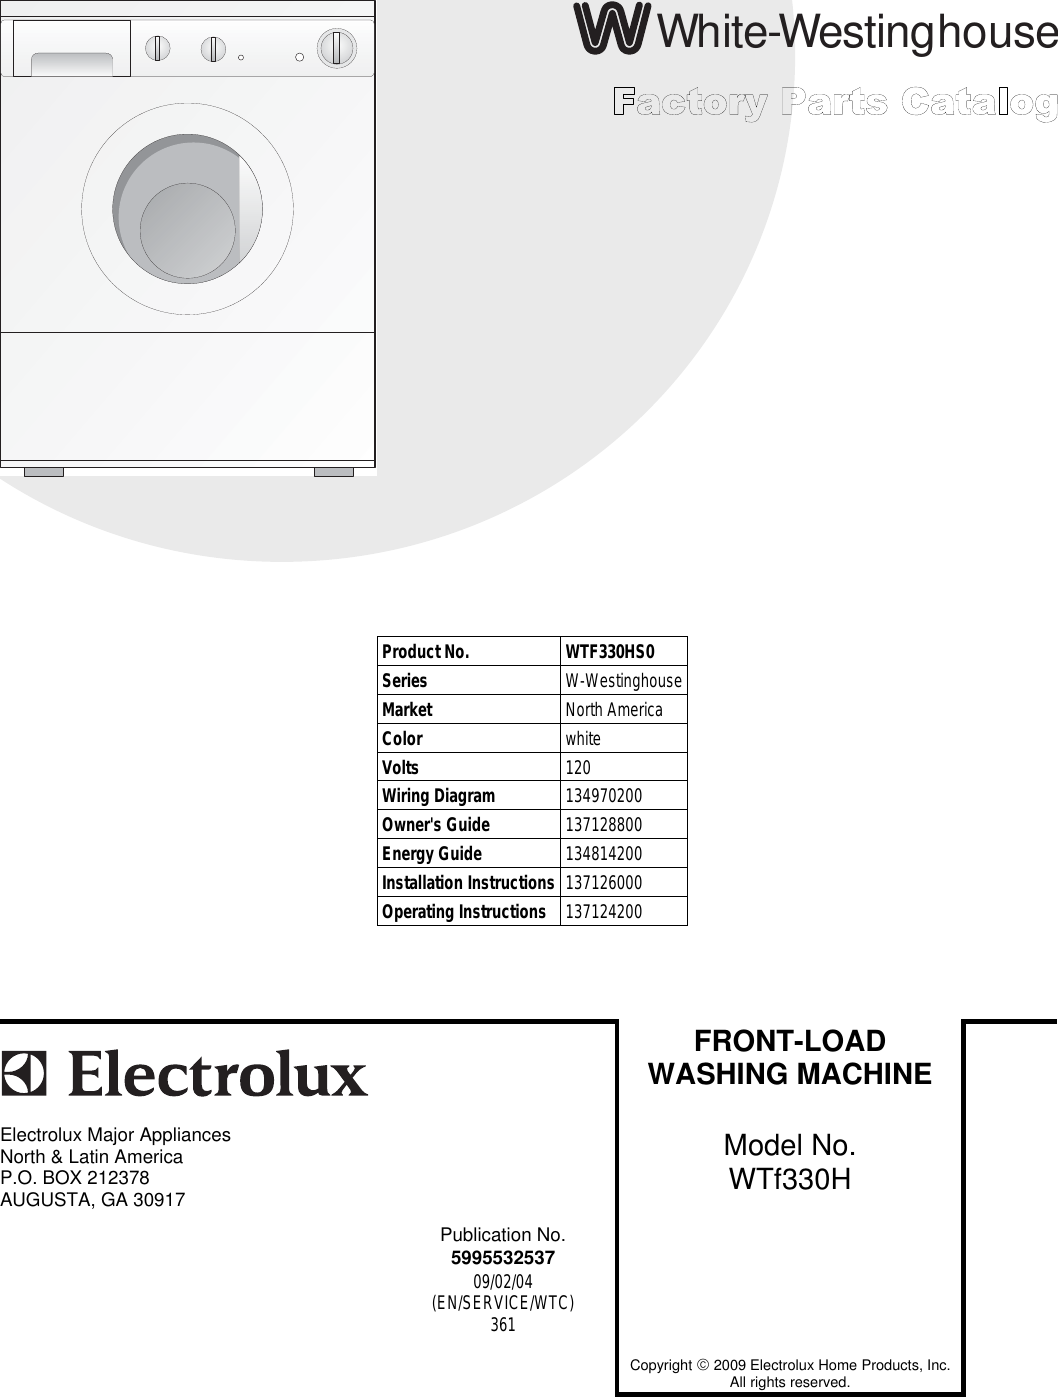 Electrolux Wtf330hs0 Users Manual To Begin A Parts Catalog Click Front Loader Washing Machine Wiring Diagram Load Contents In The Top Menu Bar